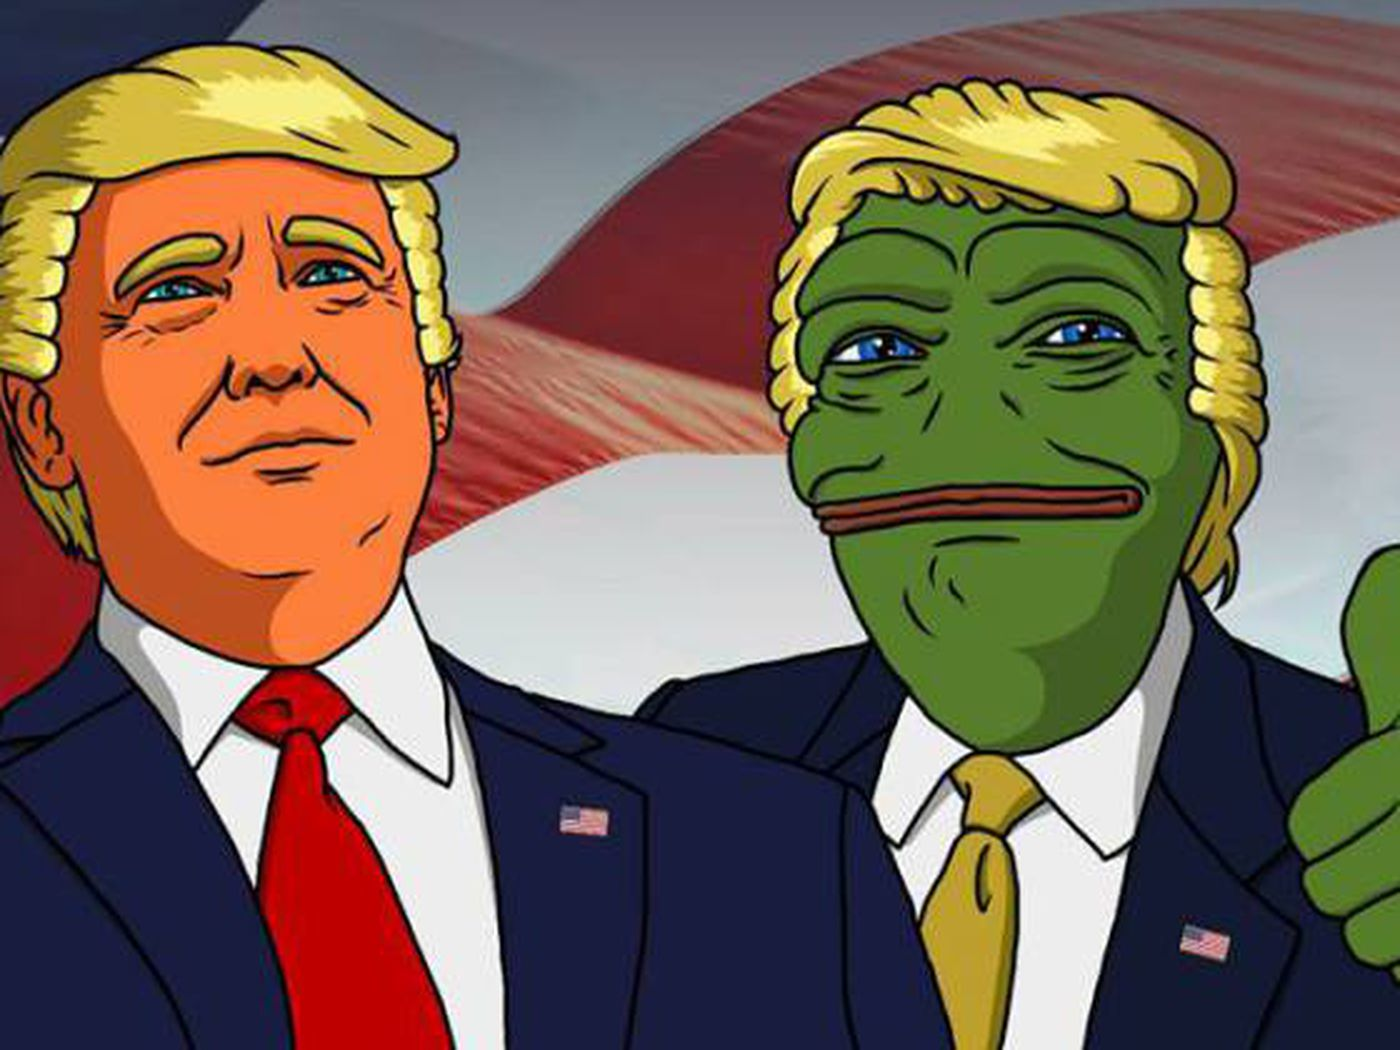 how pepe the frog and dilbert explain the culture wars of the 2016